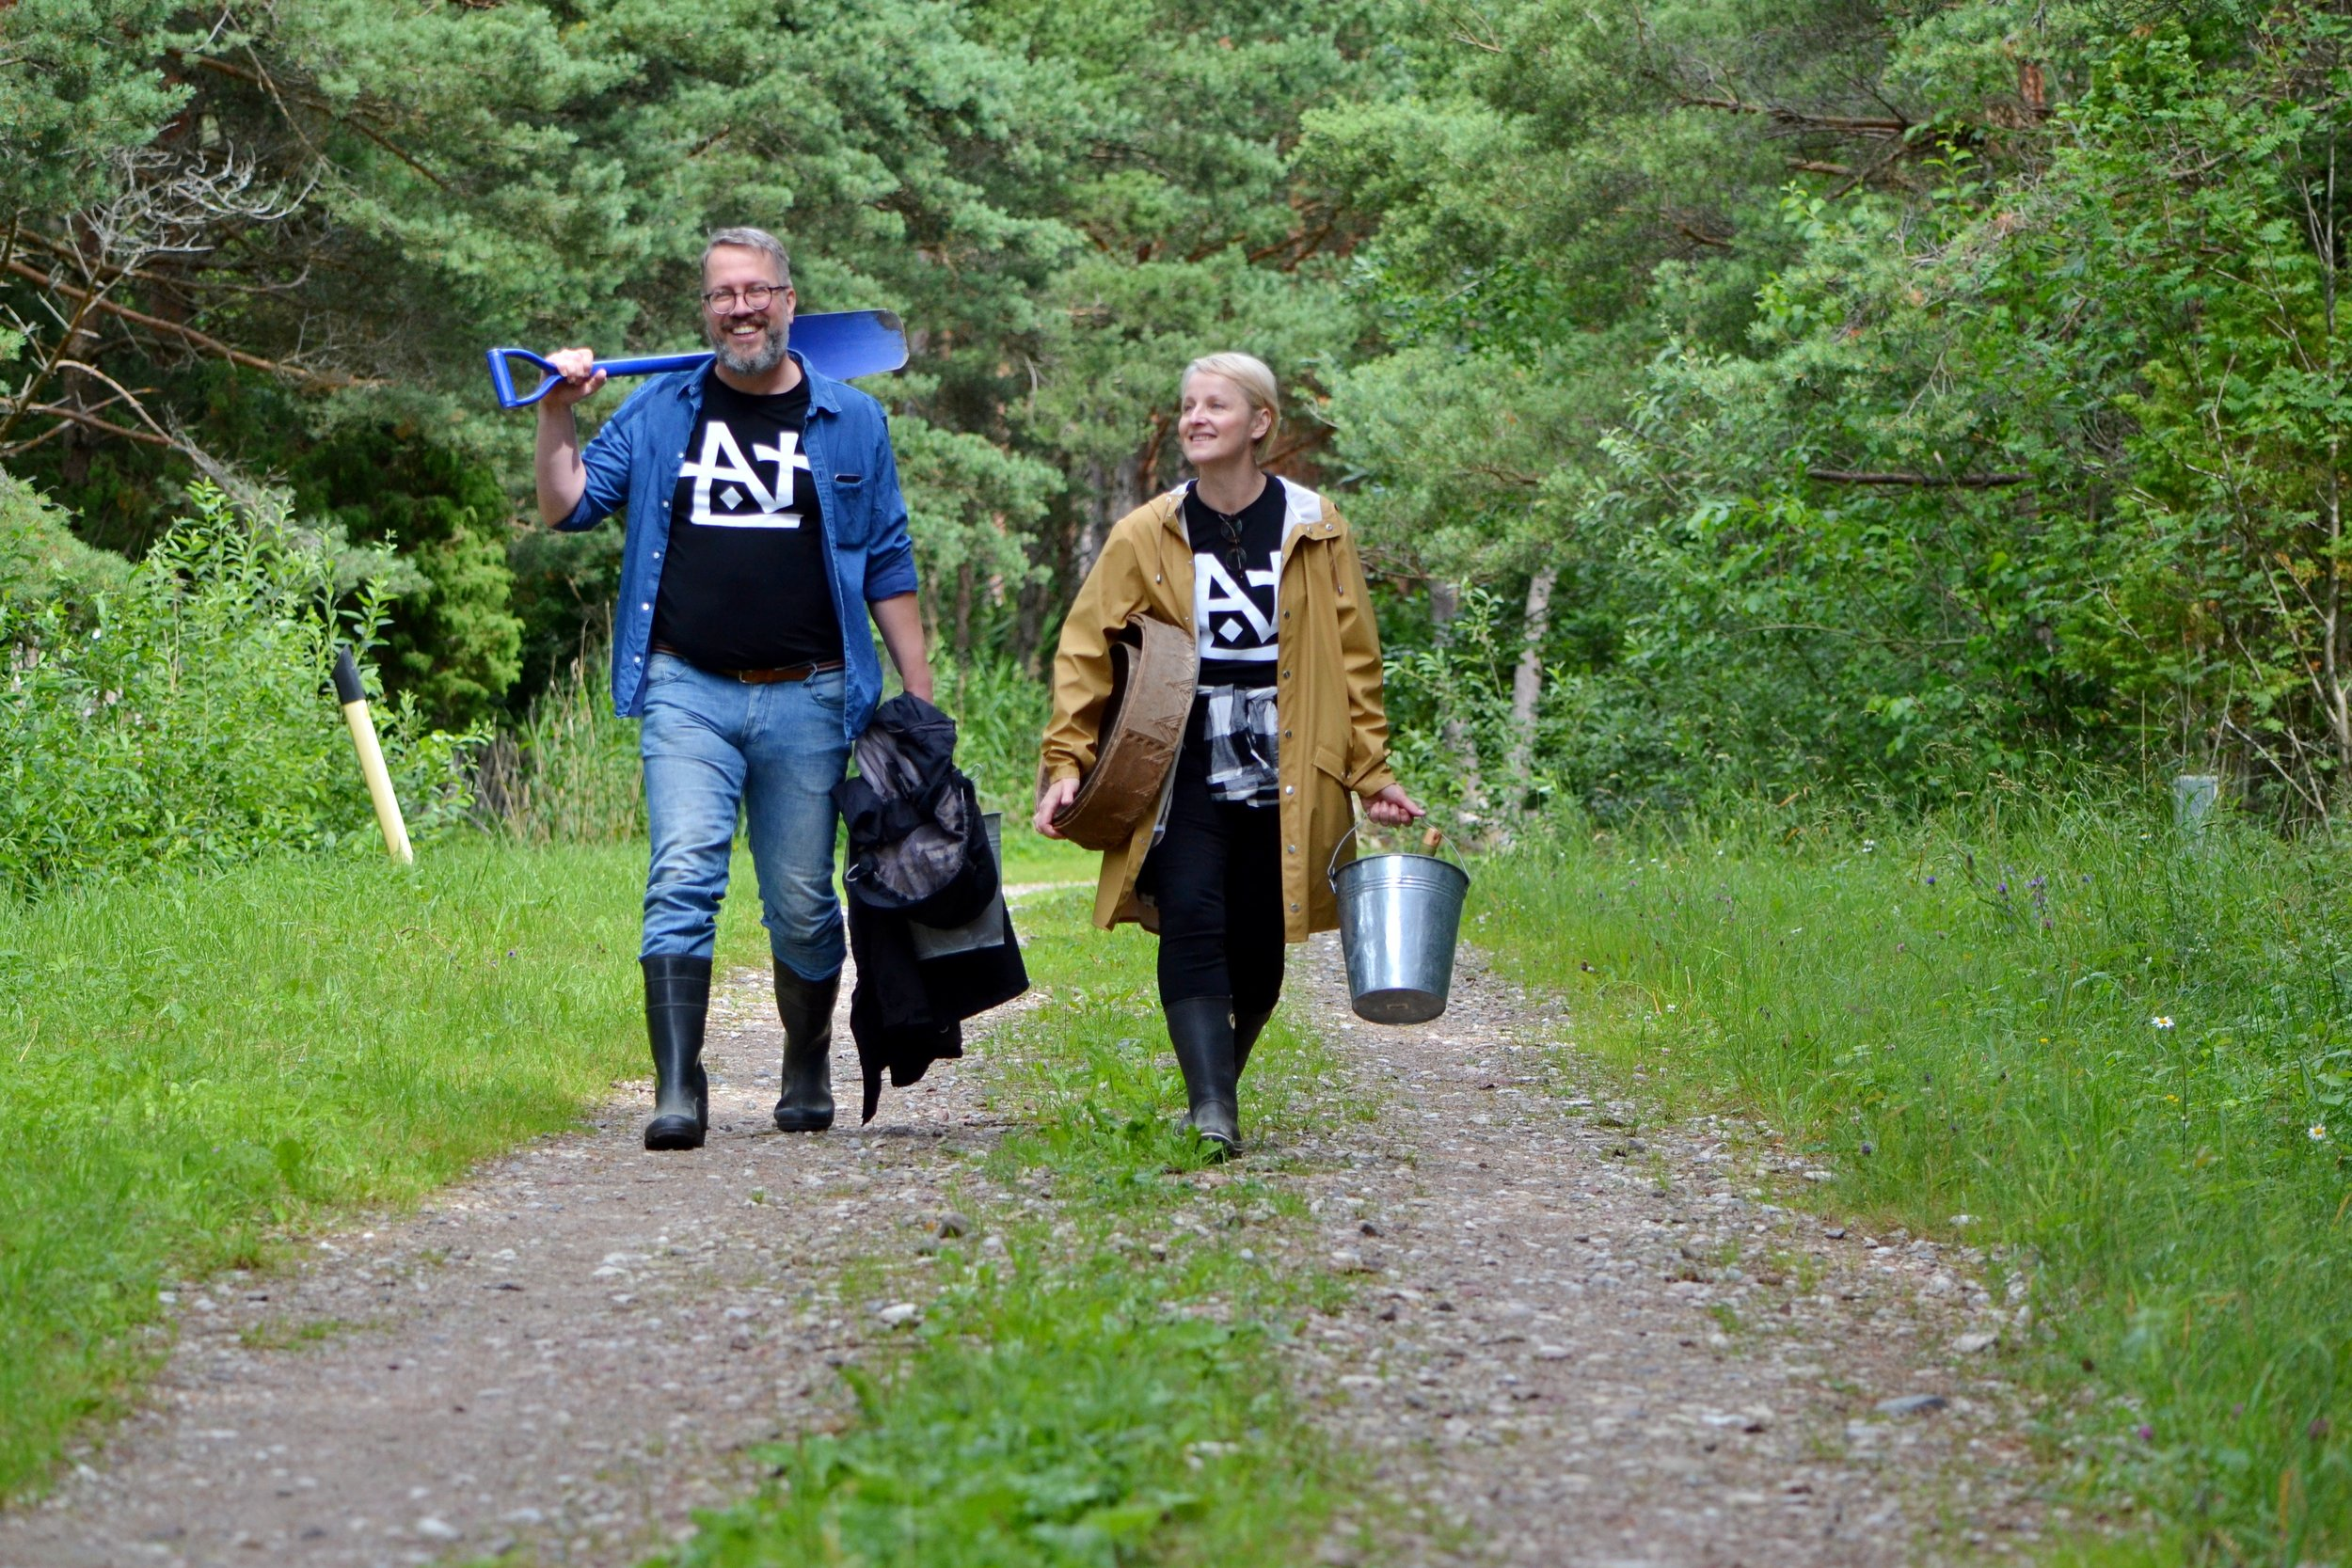 Foraging in 2019 - Tarmo and Maarit are Heading to the nature to pick some herbs. Photo by Kristina Mägi